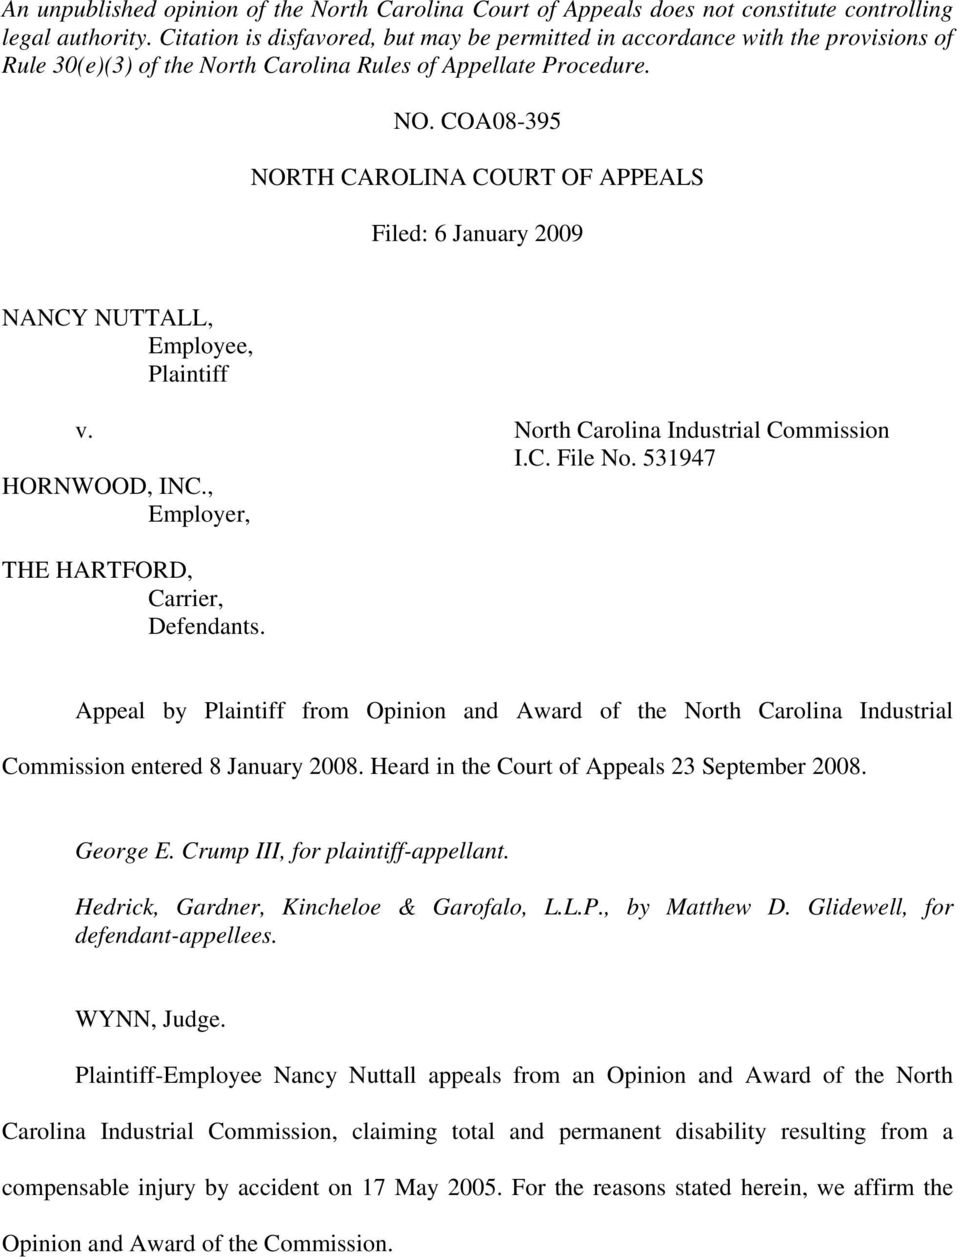 COA08-395 NORTH CAROLINA COURT OF APPEALS Filed: 6 January 2009 NANCY NUTTALL, Employee, Plaintiff v. North Carolina Industrial Commission I.C. File No. 531947 HORNWOOD, INC.